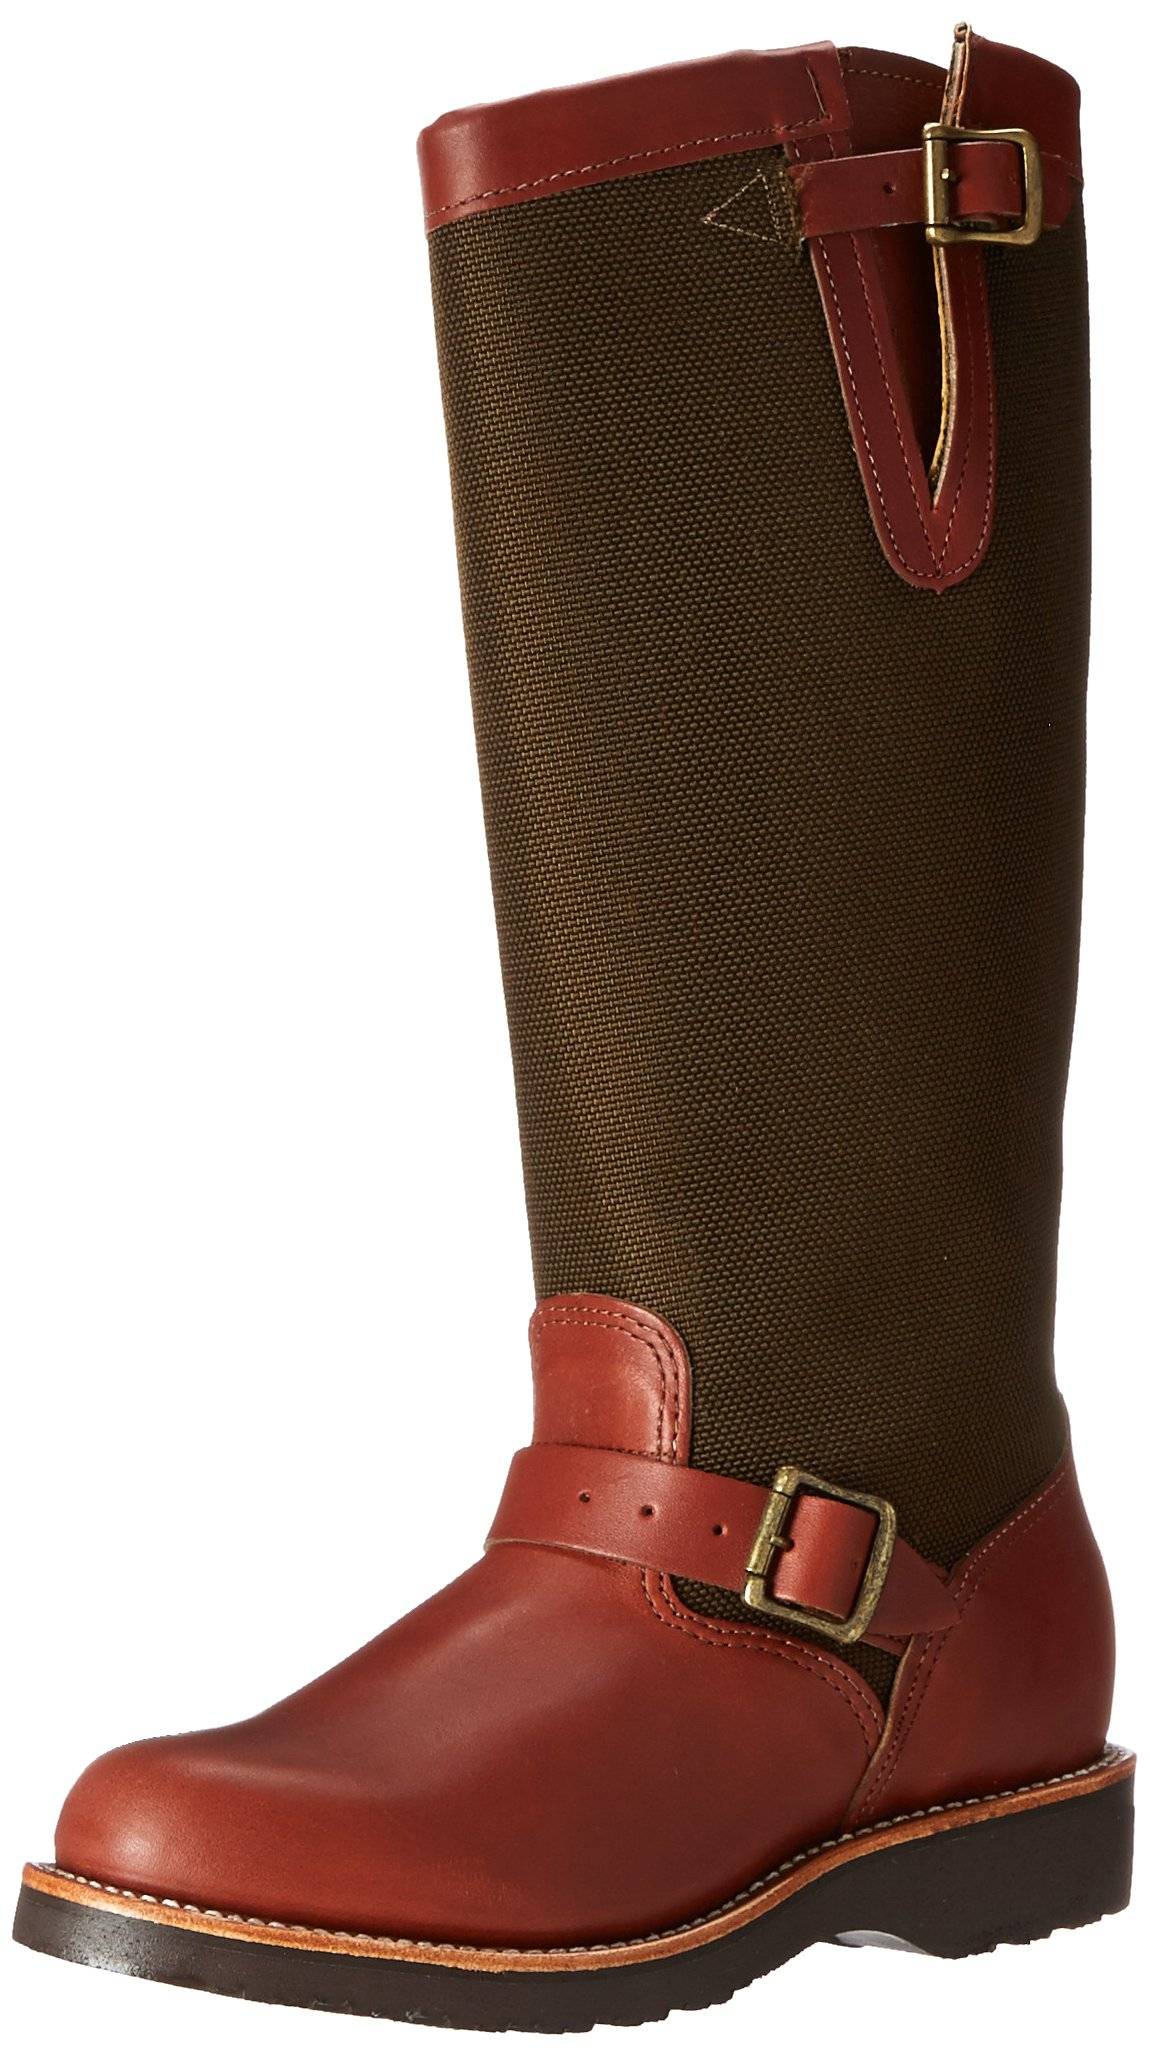 Chippewa Women's 15'' Pull On L23913 Snake Boot,Brown,8 M US